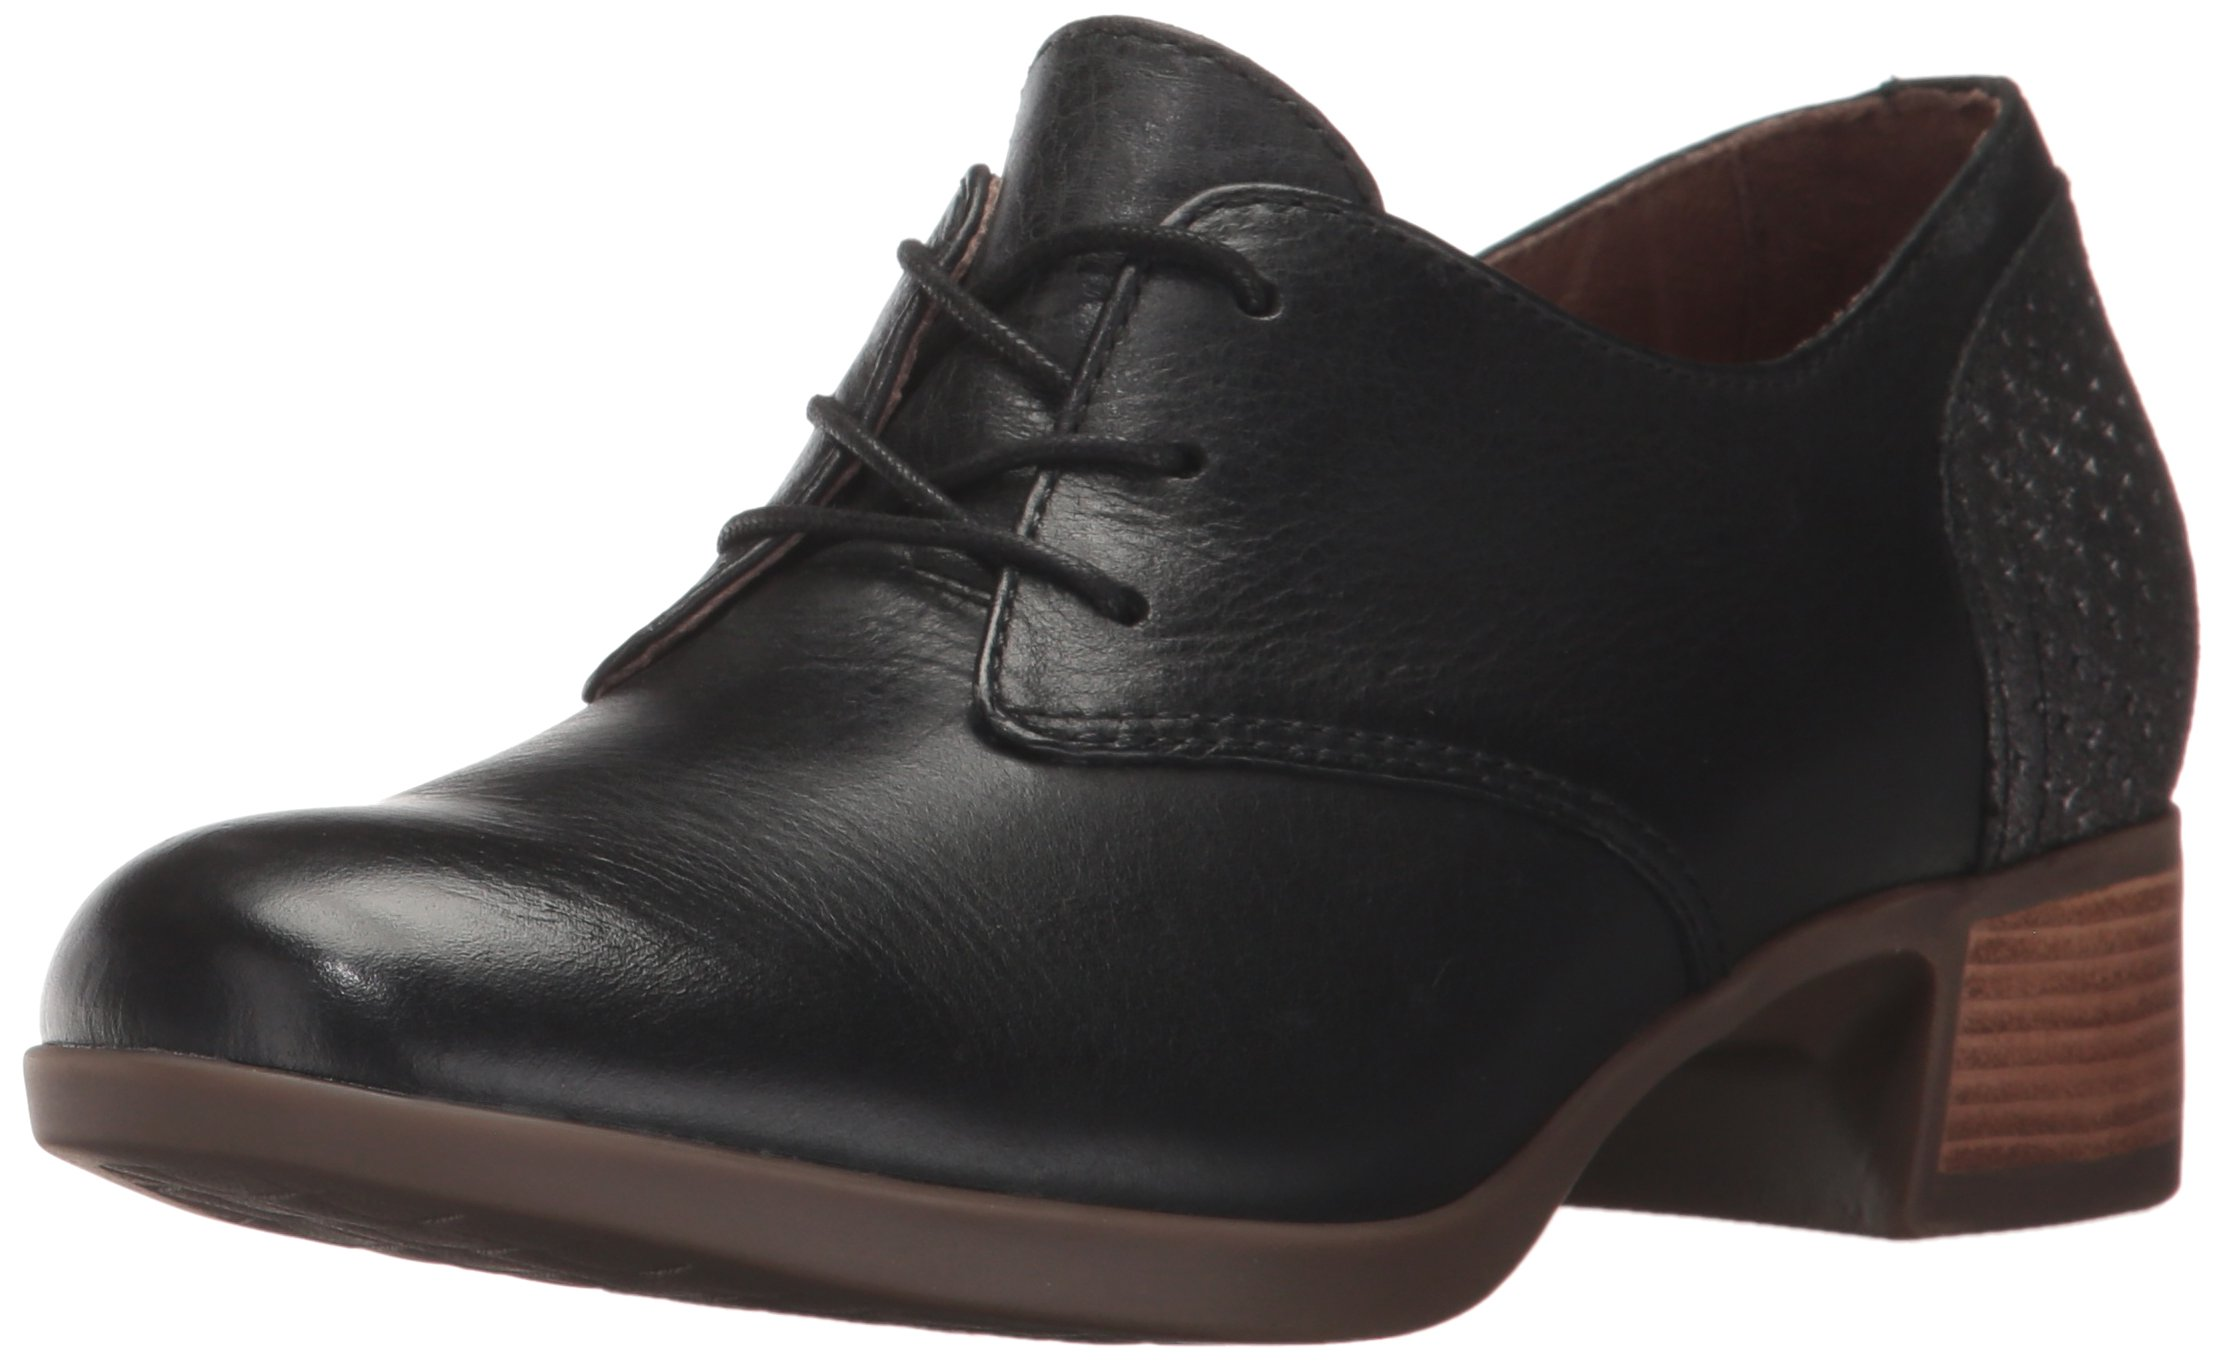 Dansko Women's Louise Oxford, Black Burnished Nappa, 38 EU/7.5-8 M US